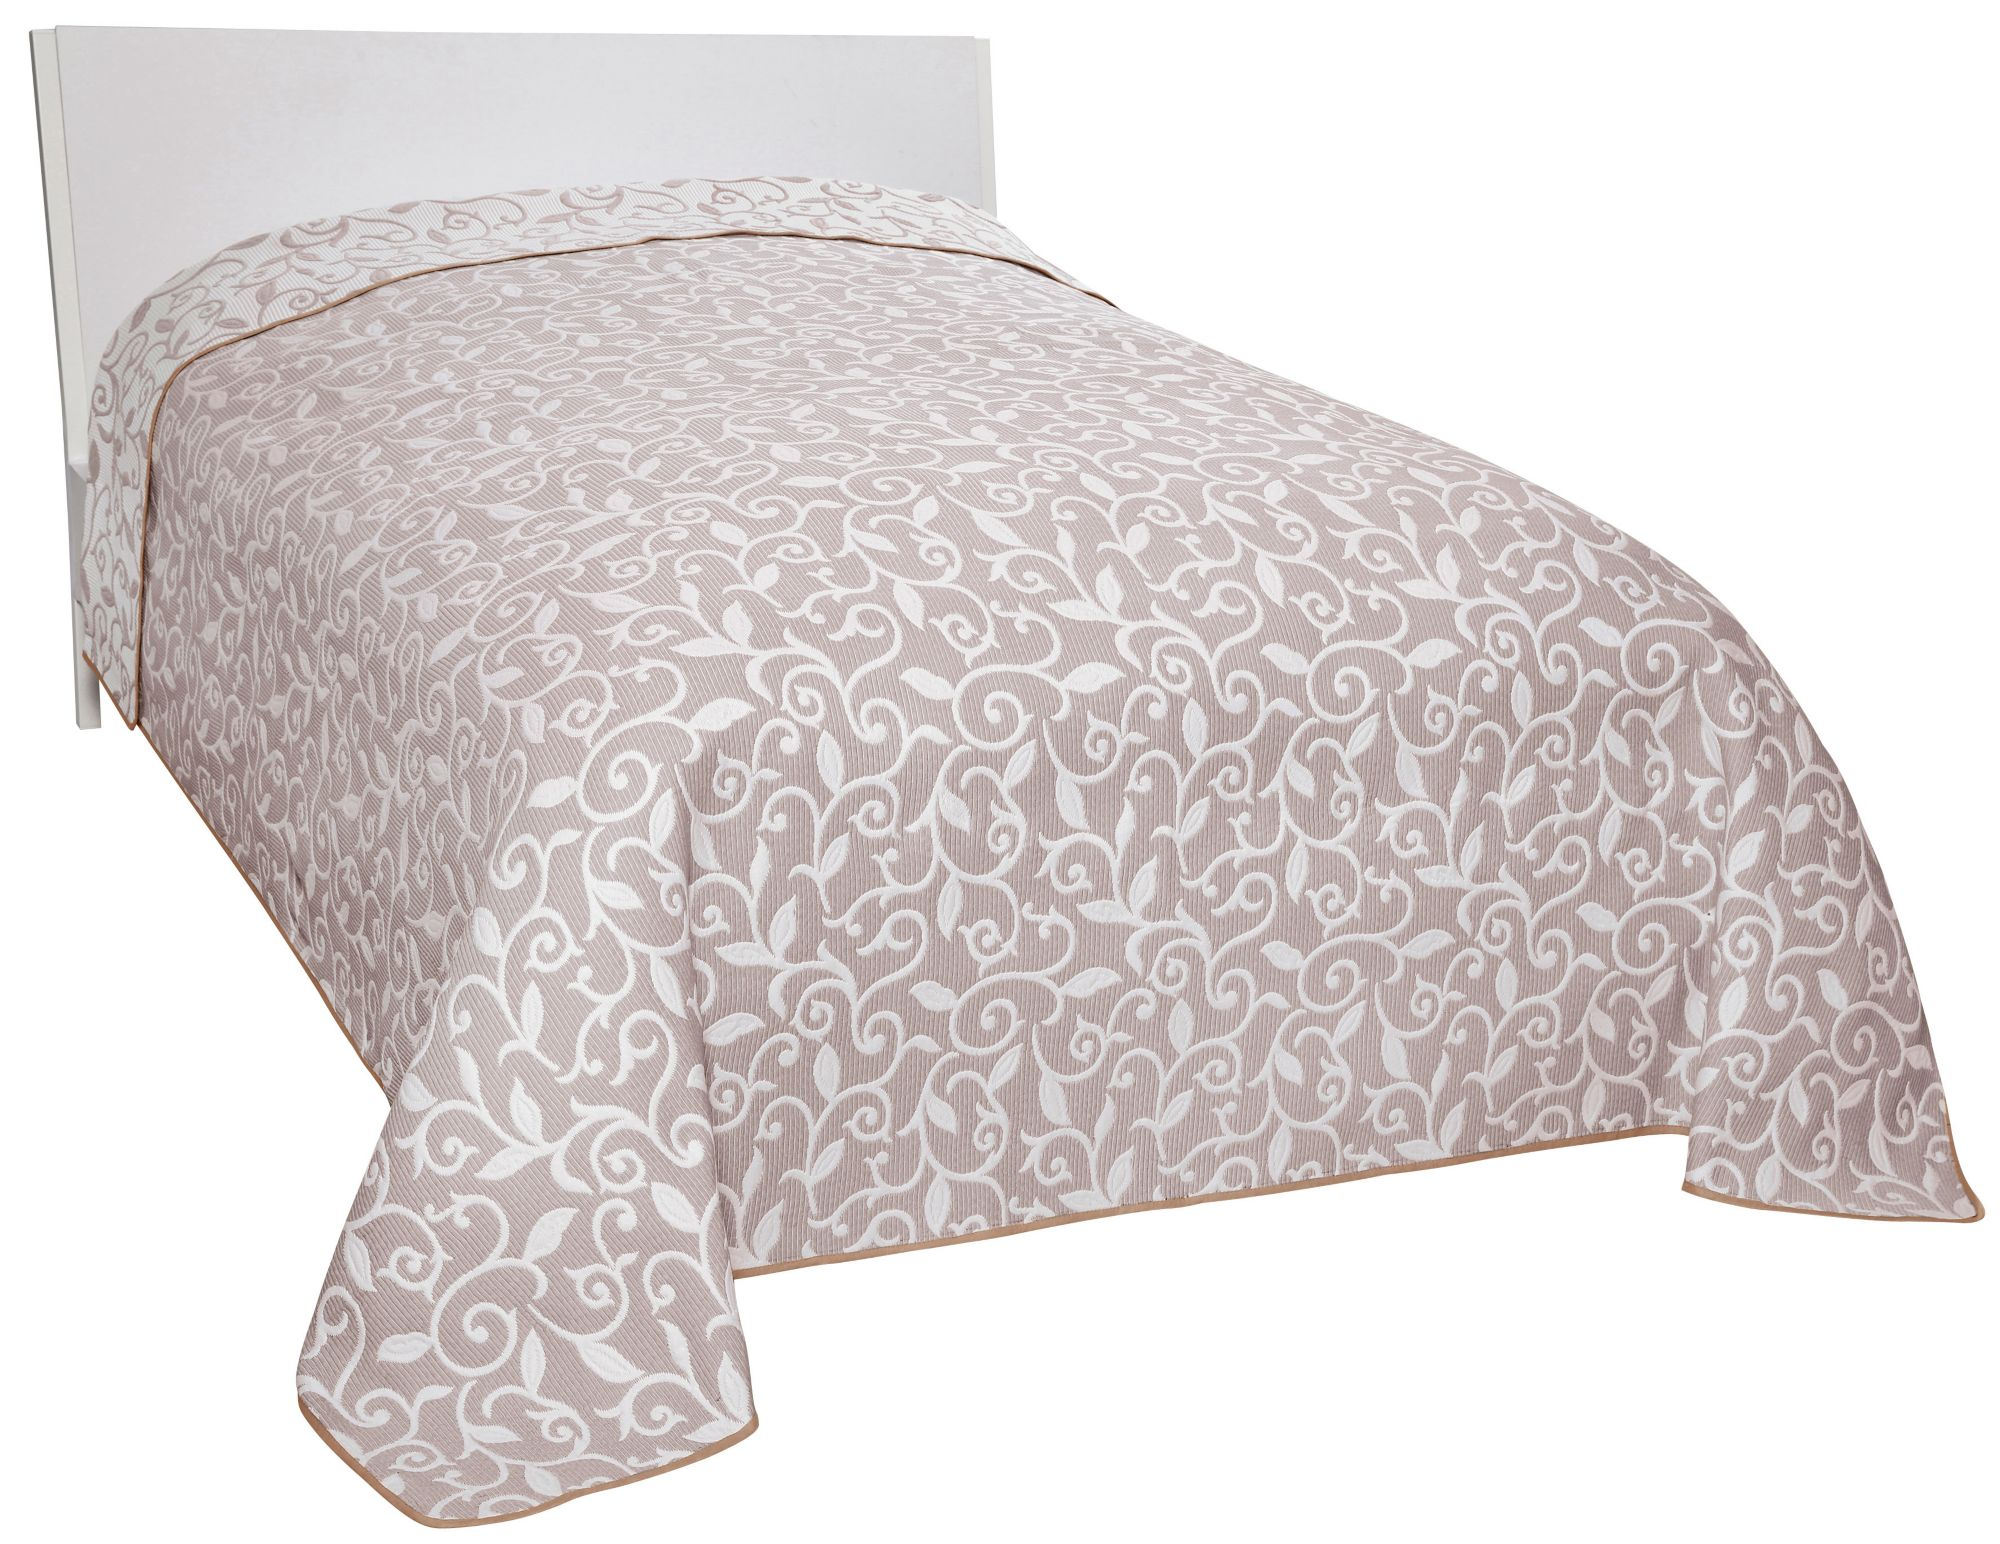 Tagesdecke dohle menk conny mit blumenranken for Tagesdecke paisley